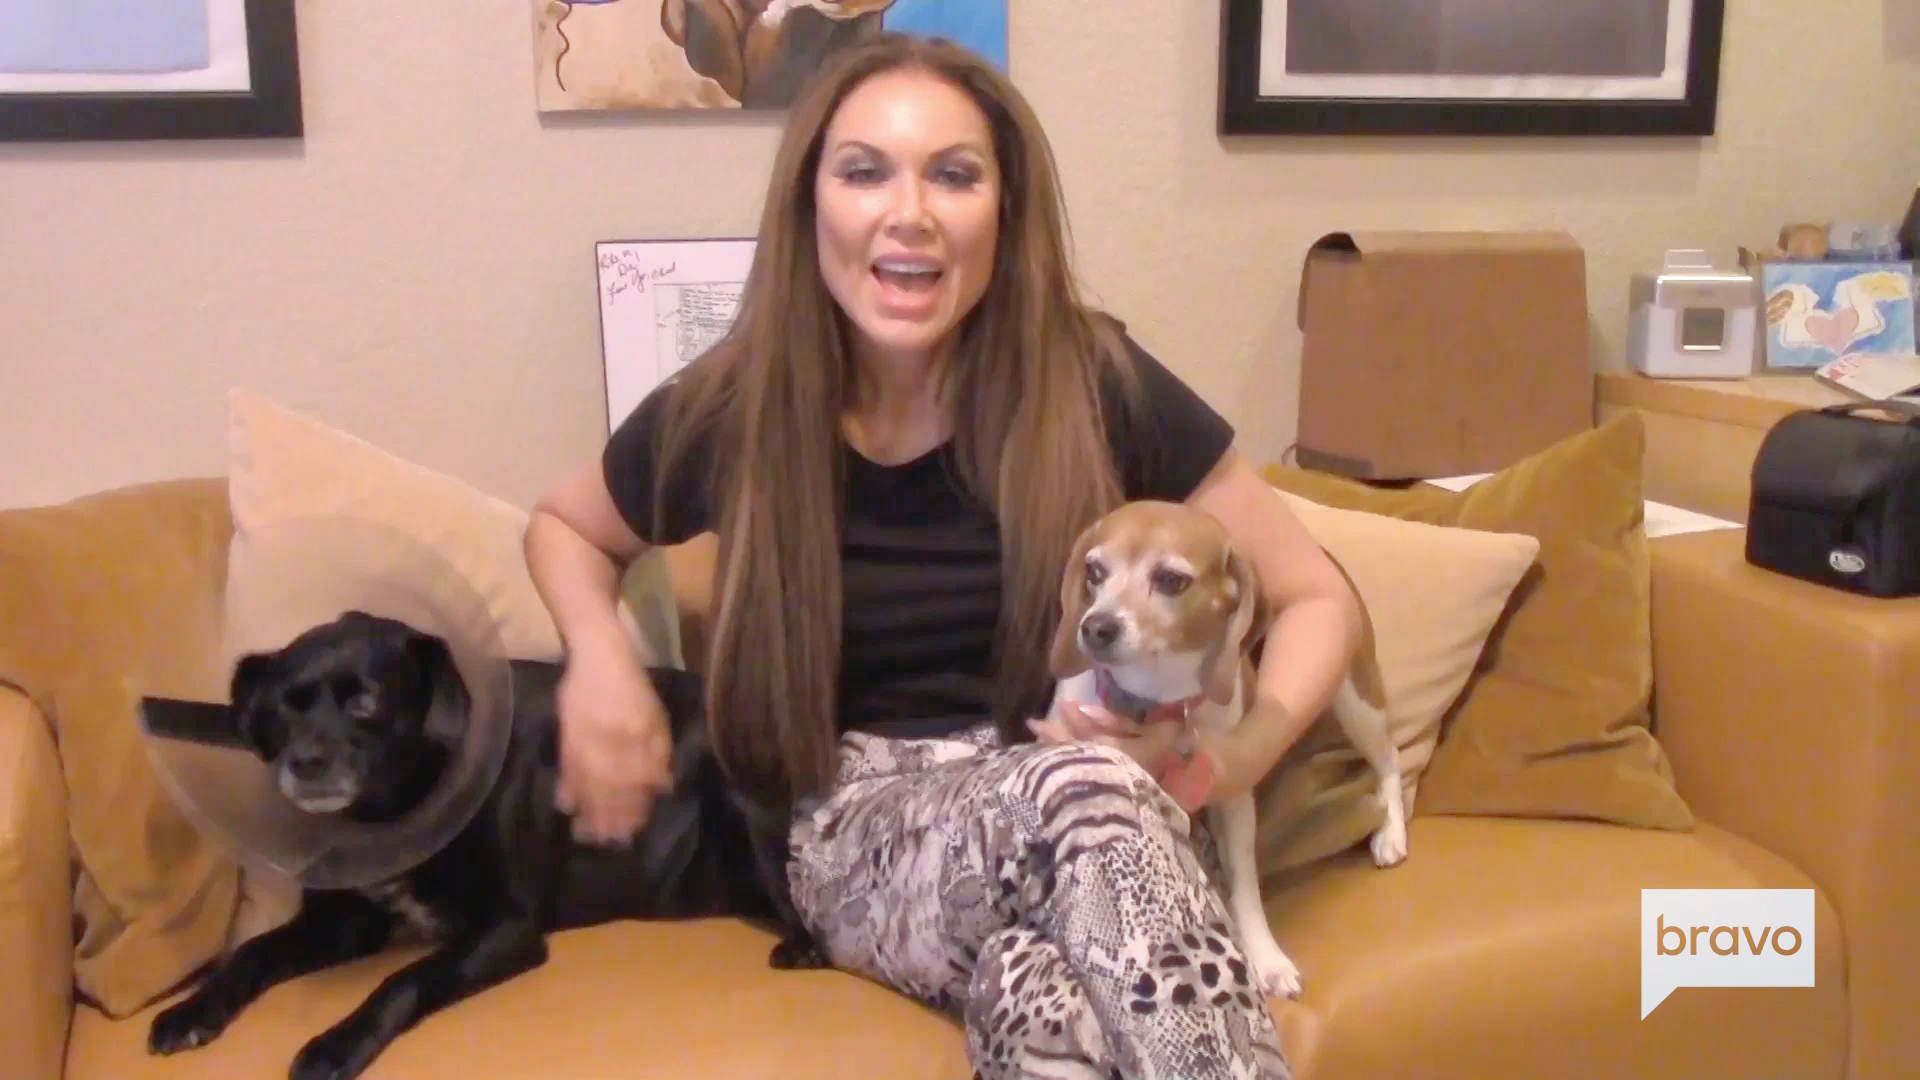 LeeAnne Locken Introduces Her Two Adorable Dogs